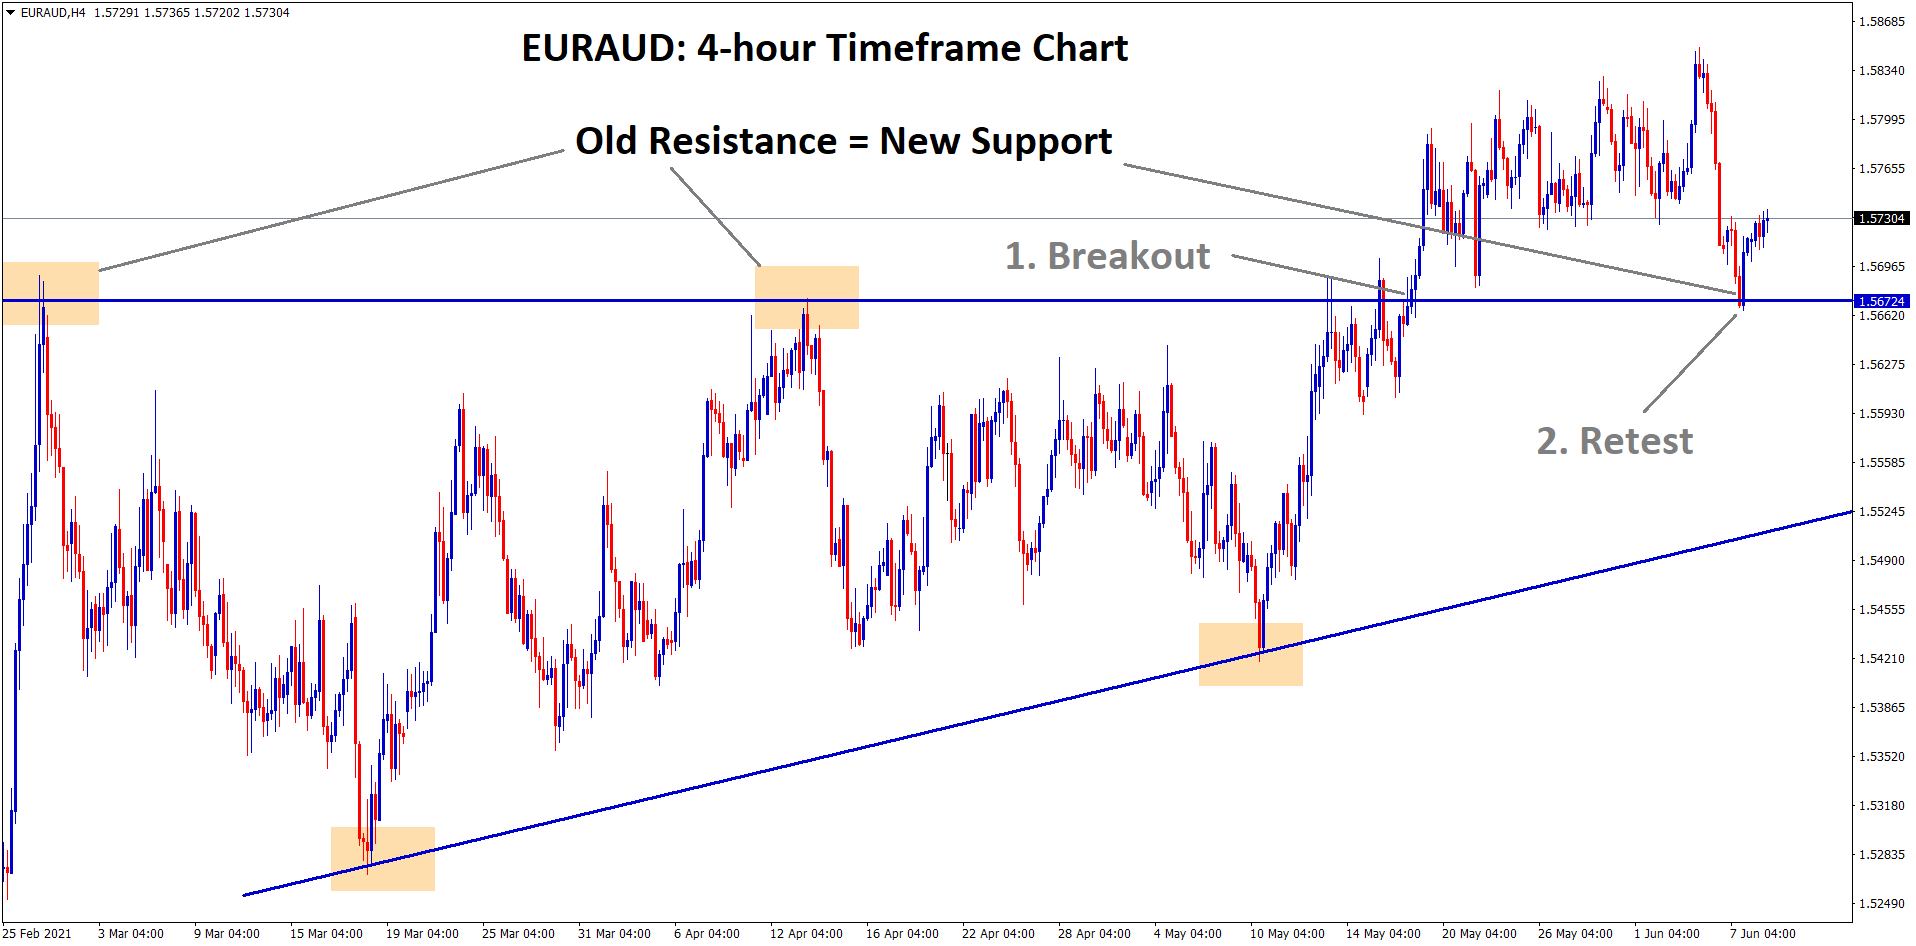 EUR AUD old resistance becomes new support and Ascending Triangle breakout retest going on.